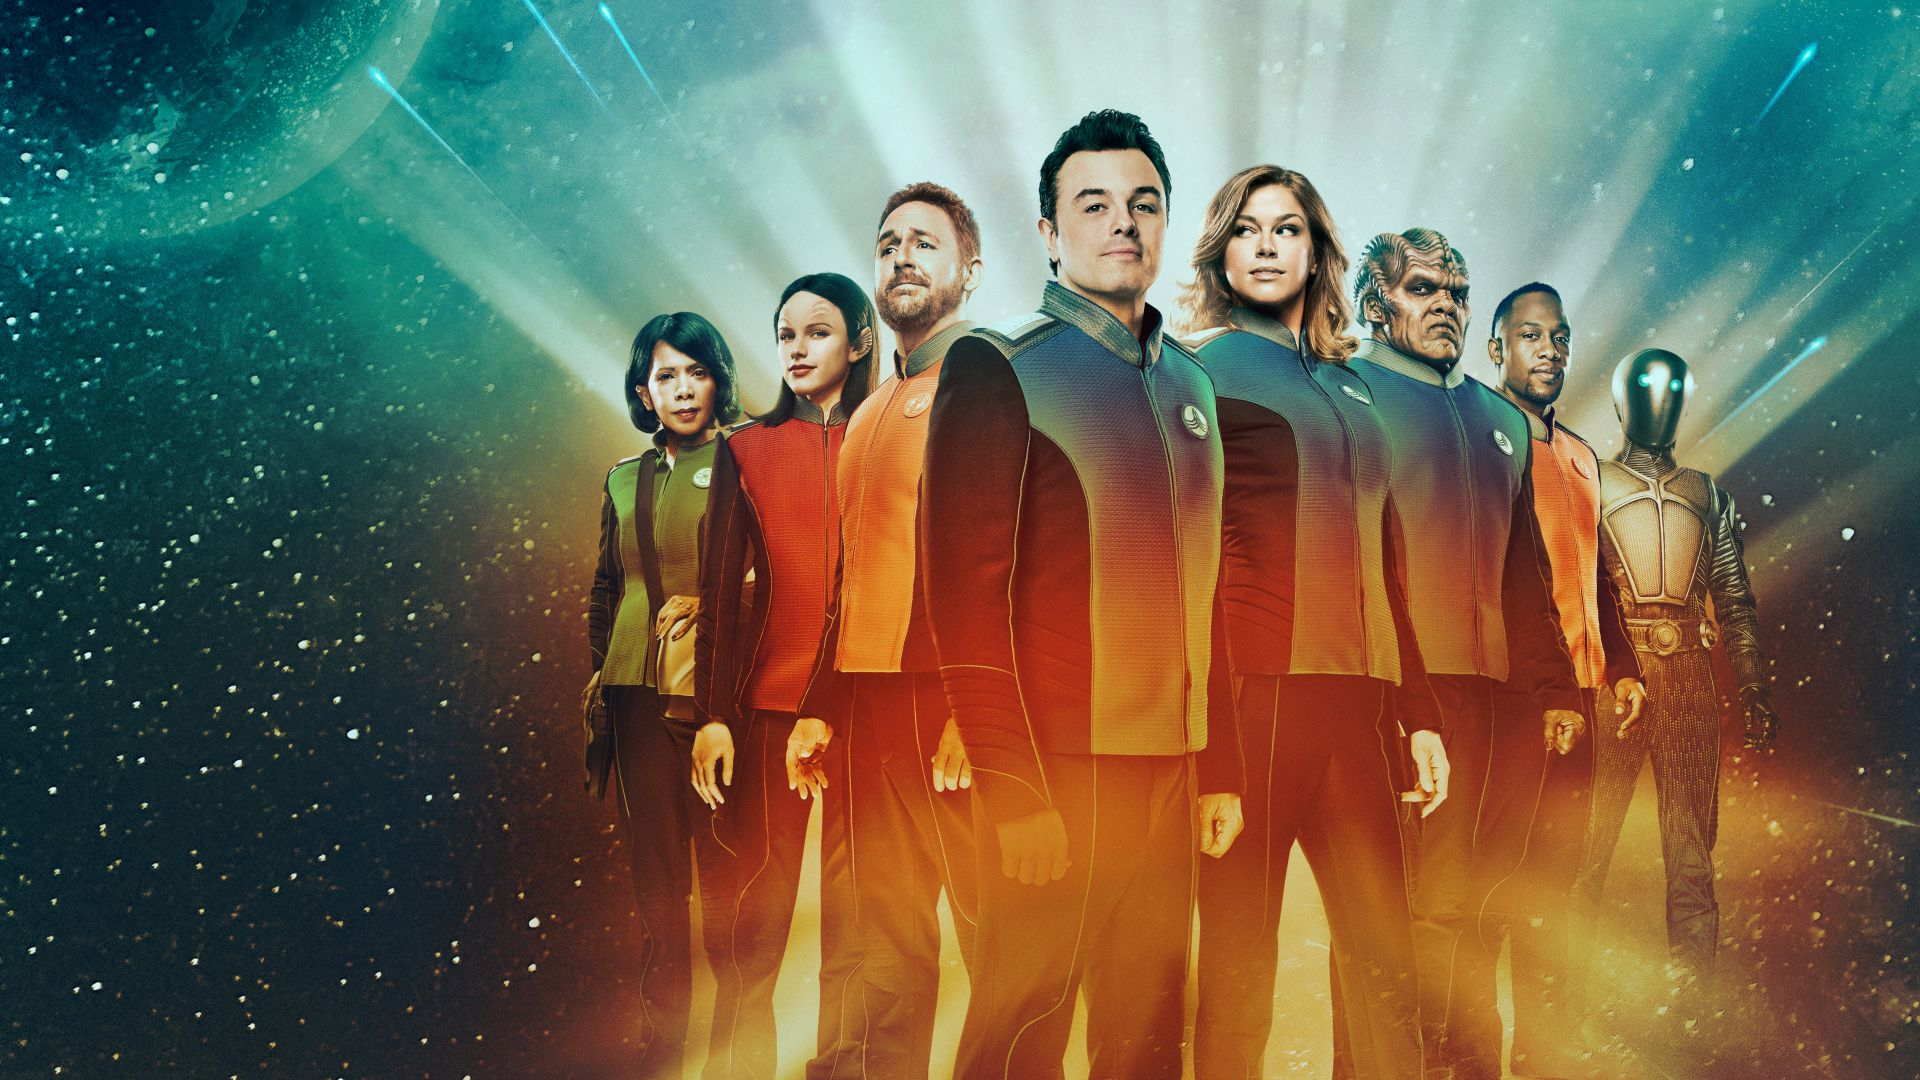 The Orville Season 1, Seth MacFarlane, Adrianne Palicki, Scott Grimes, TV Series, 5k (horizontal)